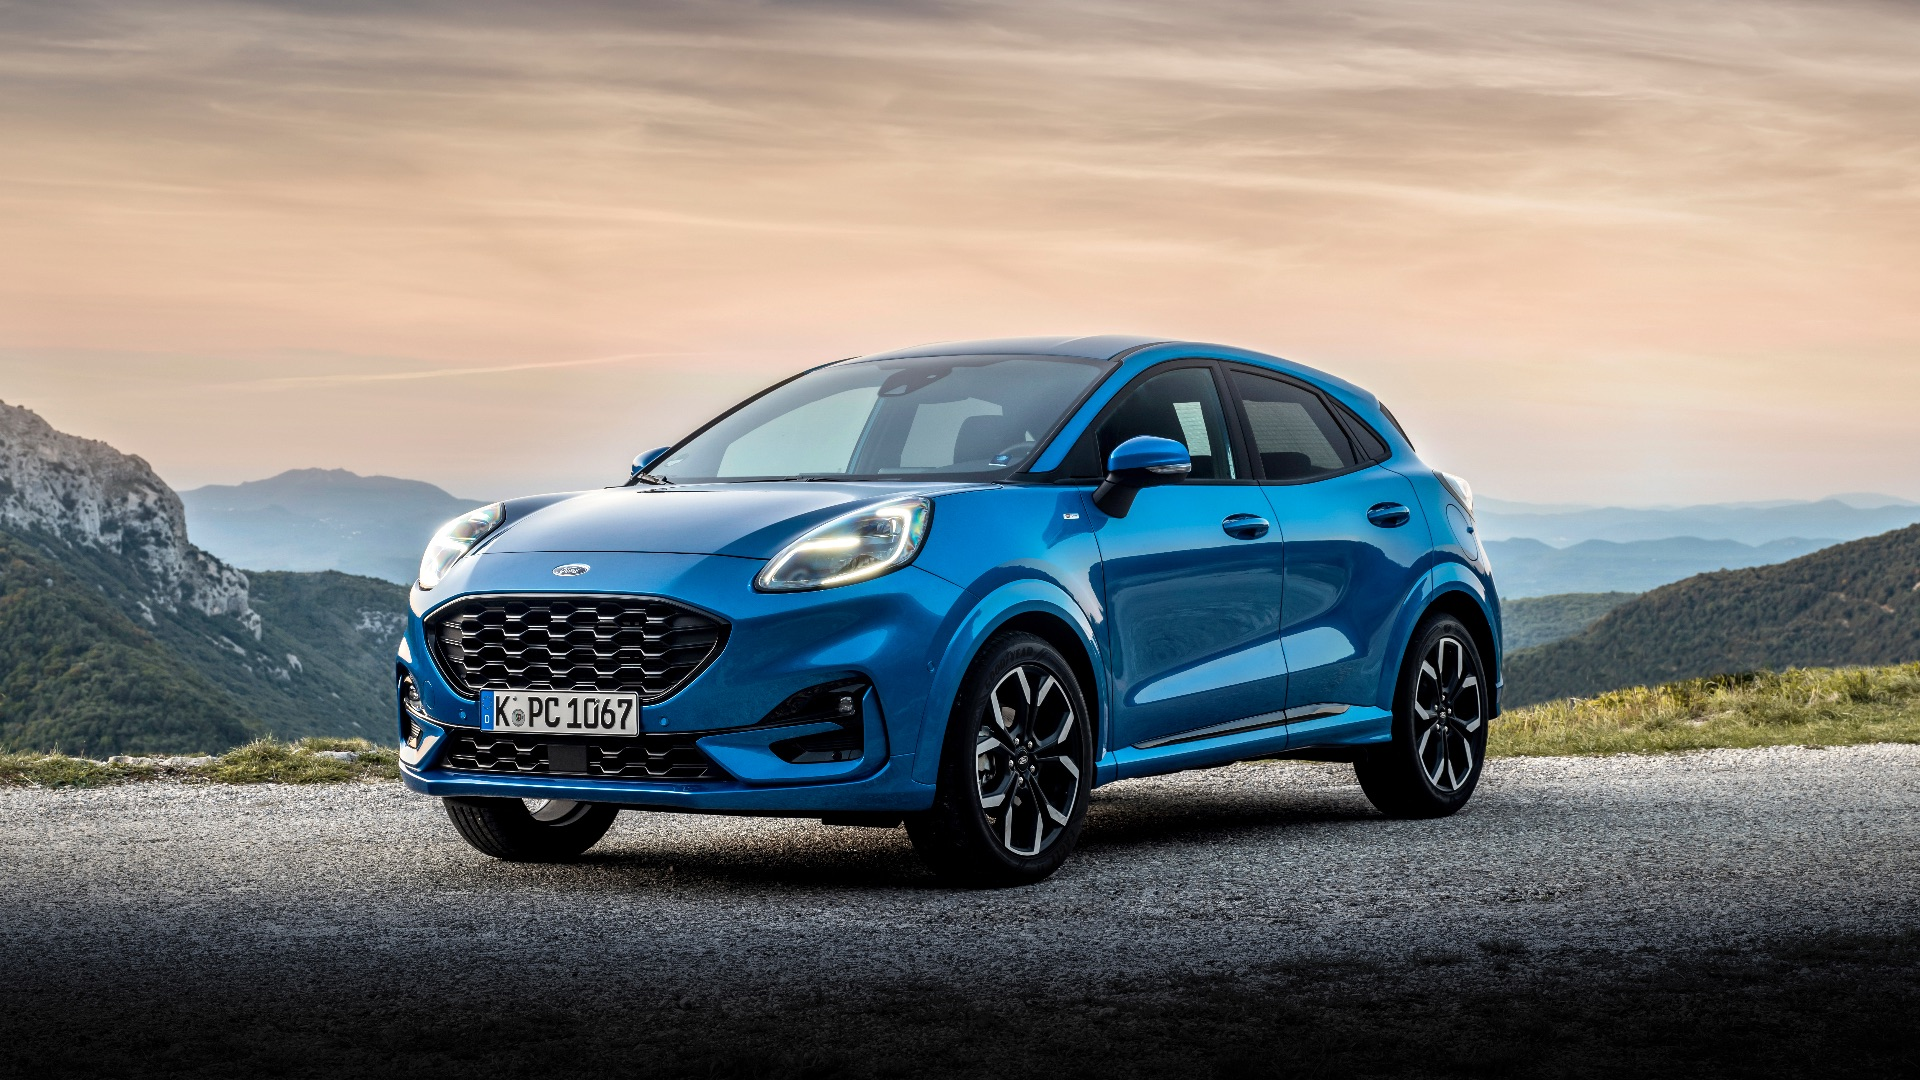 2020 Ford Puma review: top of the crossover class | Motoring ...